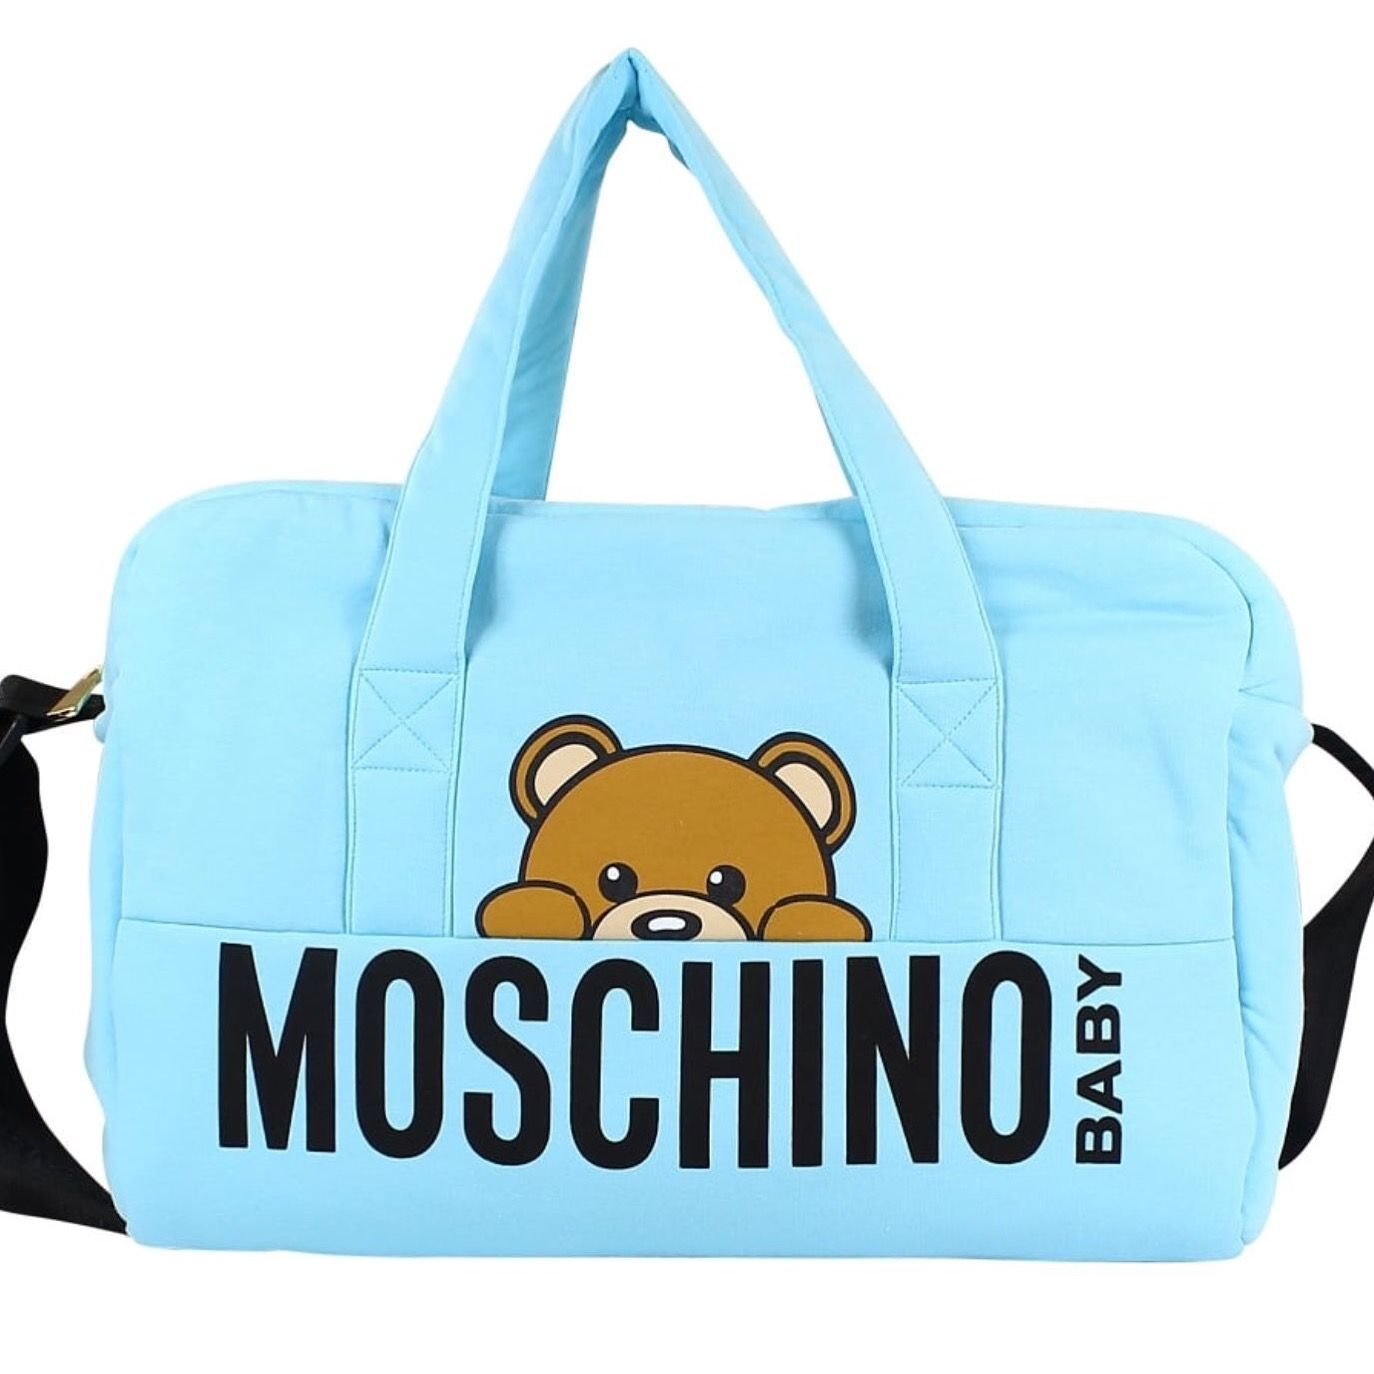 cbc54ccafe1 New Arrival: Gorgeous Moschino changing bag also in pink #fashion #moschino  #bags